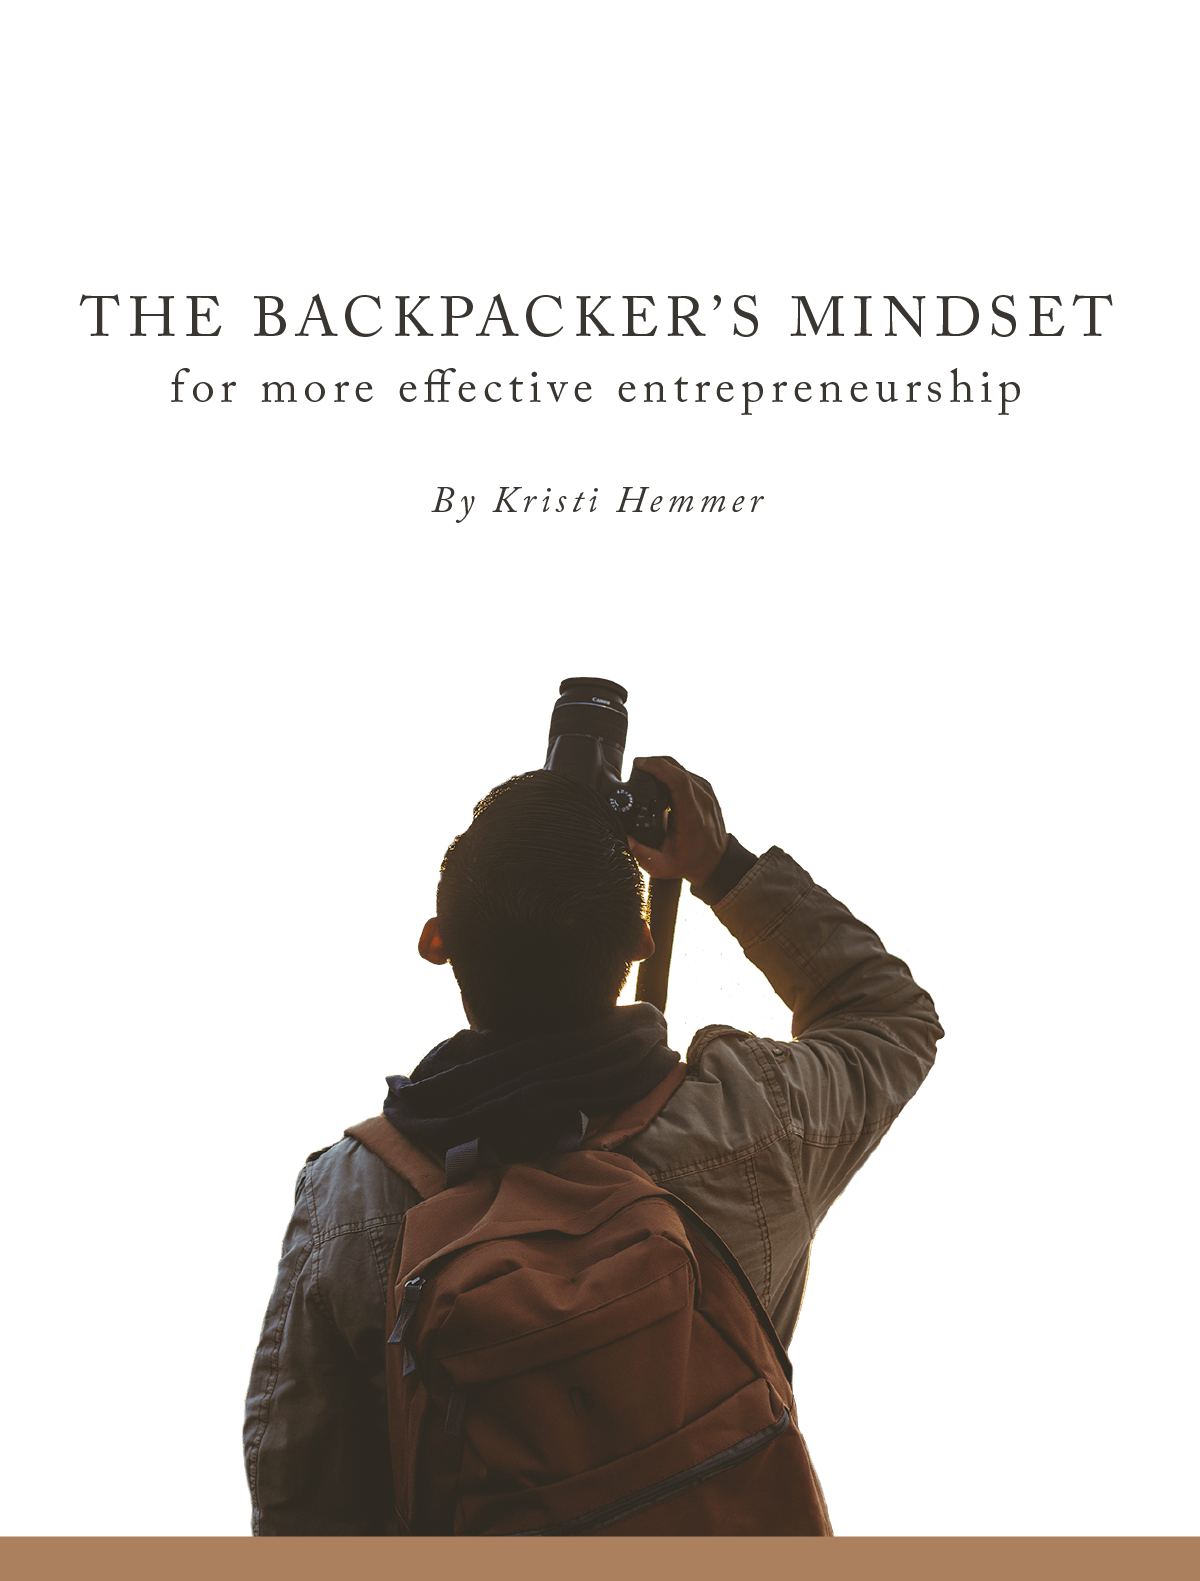 The Backpacker's Mindset for More Effective Entrepreneurship - Learn How to Become a Social Entrepreneur